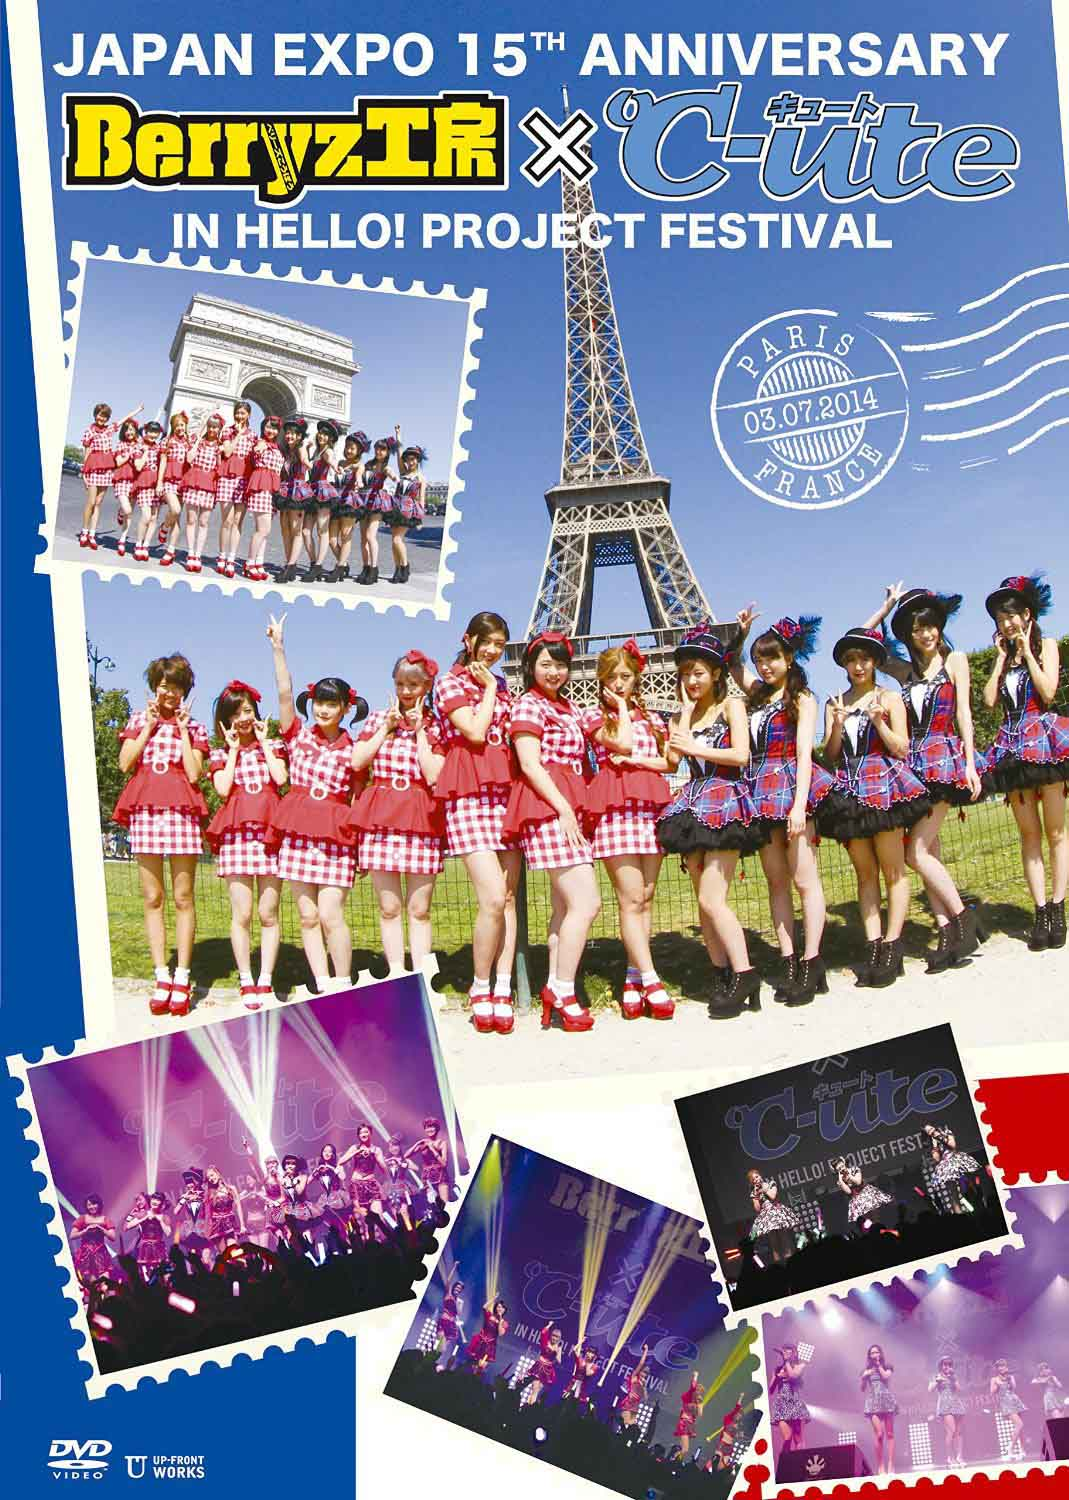 「Japan Expo15th Anniversary Berryz工房×℃-ute in Hello!Project Festival」DVD